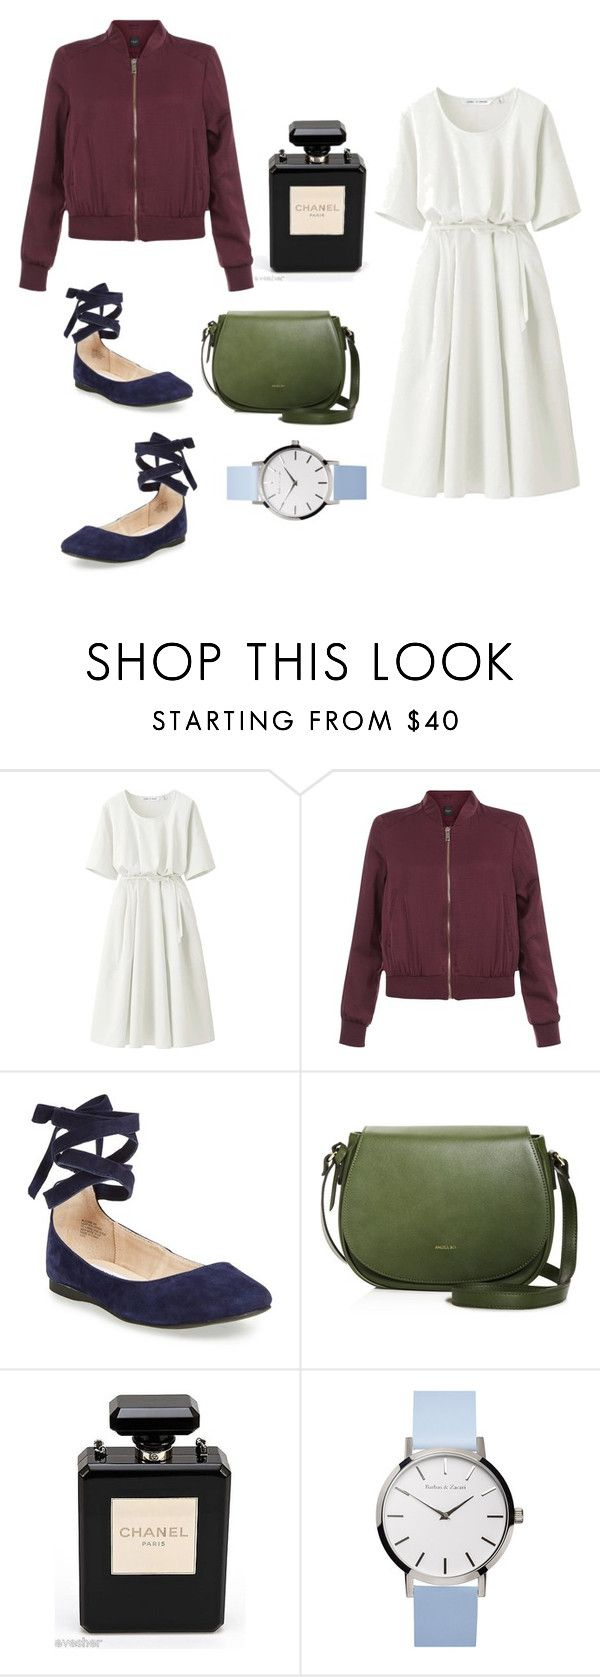 """Semi-formal outfit with perfume"" by haeyeon-song ❤ liked on Polyvore featuring Uniqlo, New Look, Steve Madden and Chanel"